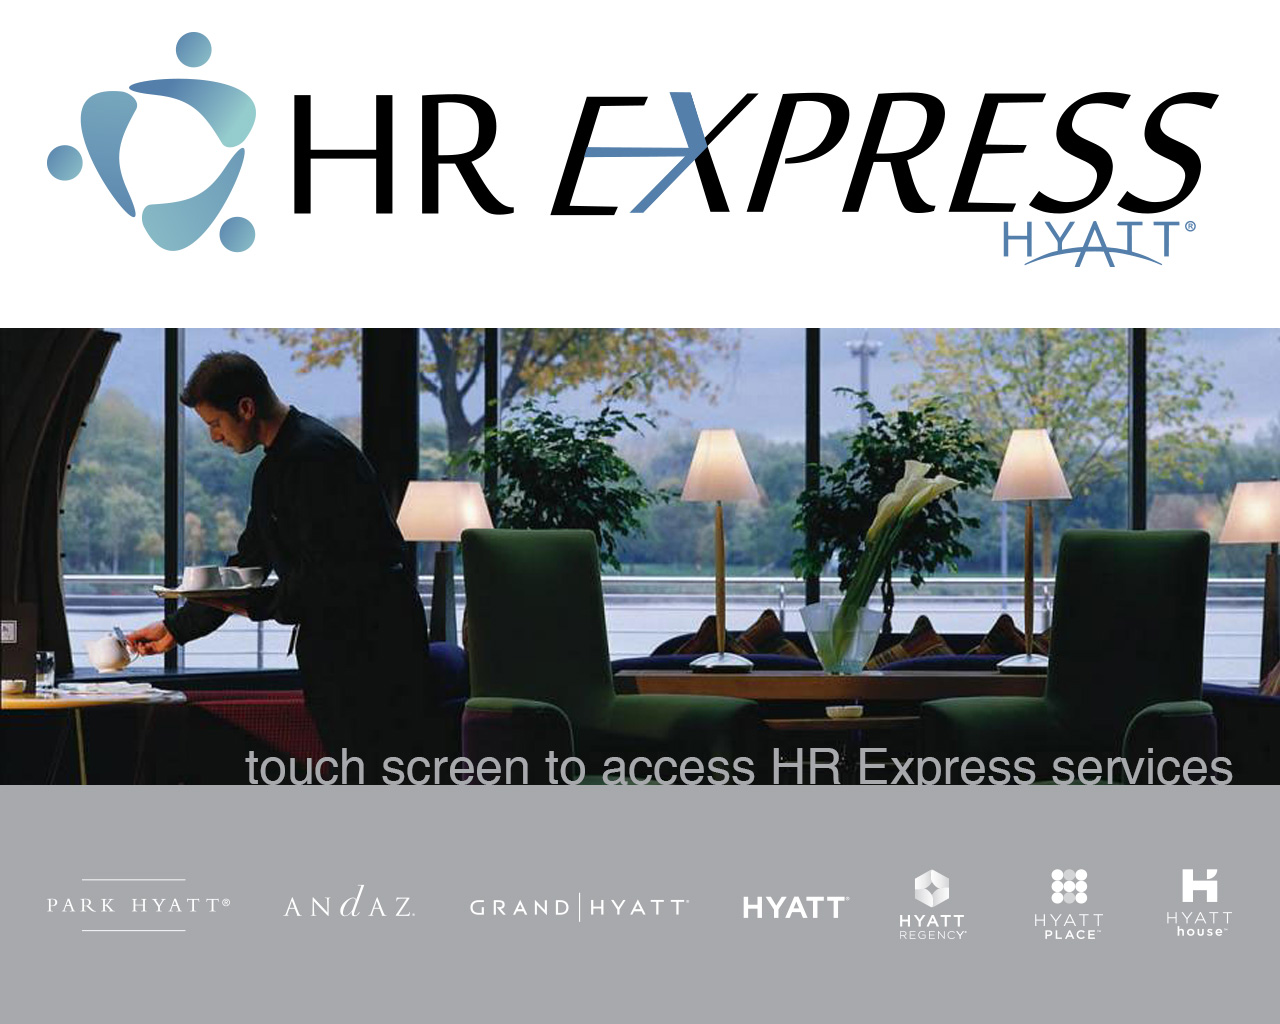 Hyatt Hotels Human Resources HR Screensaver